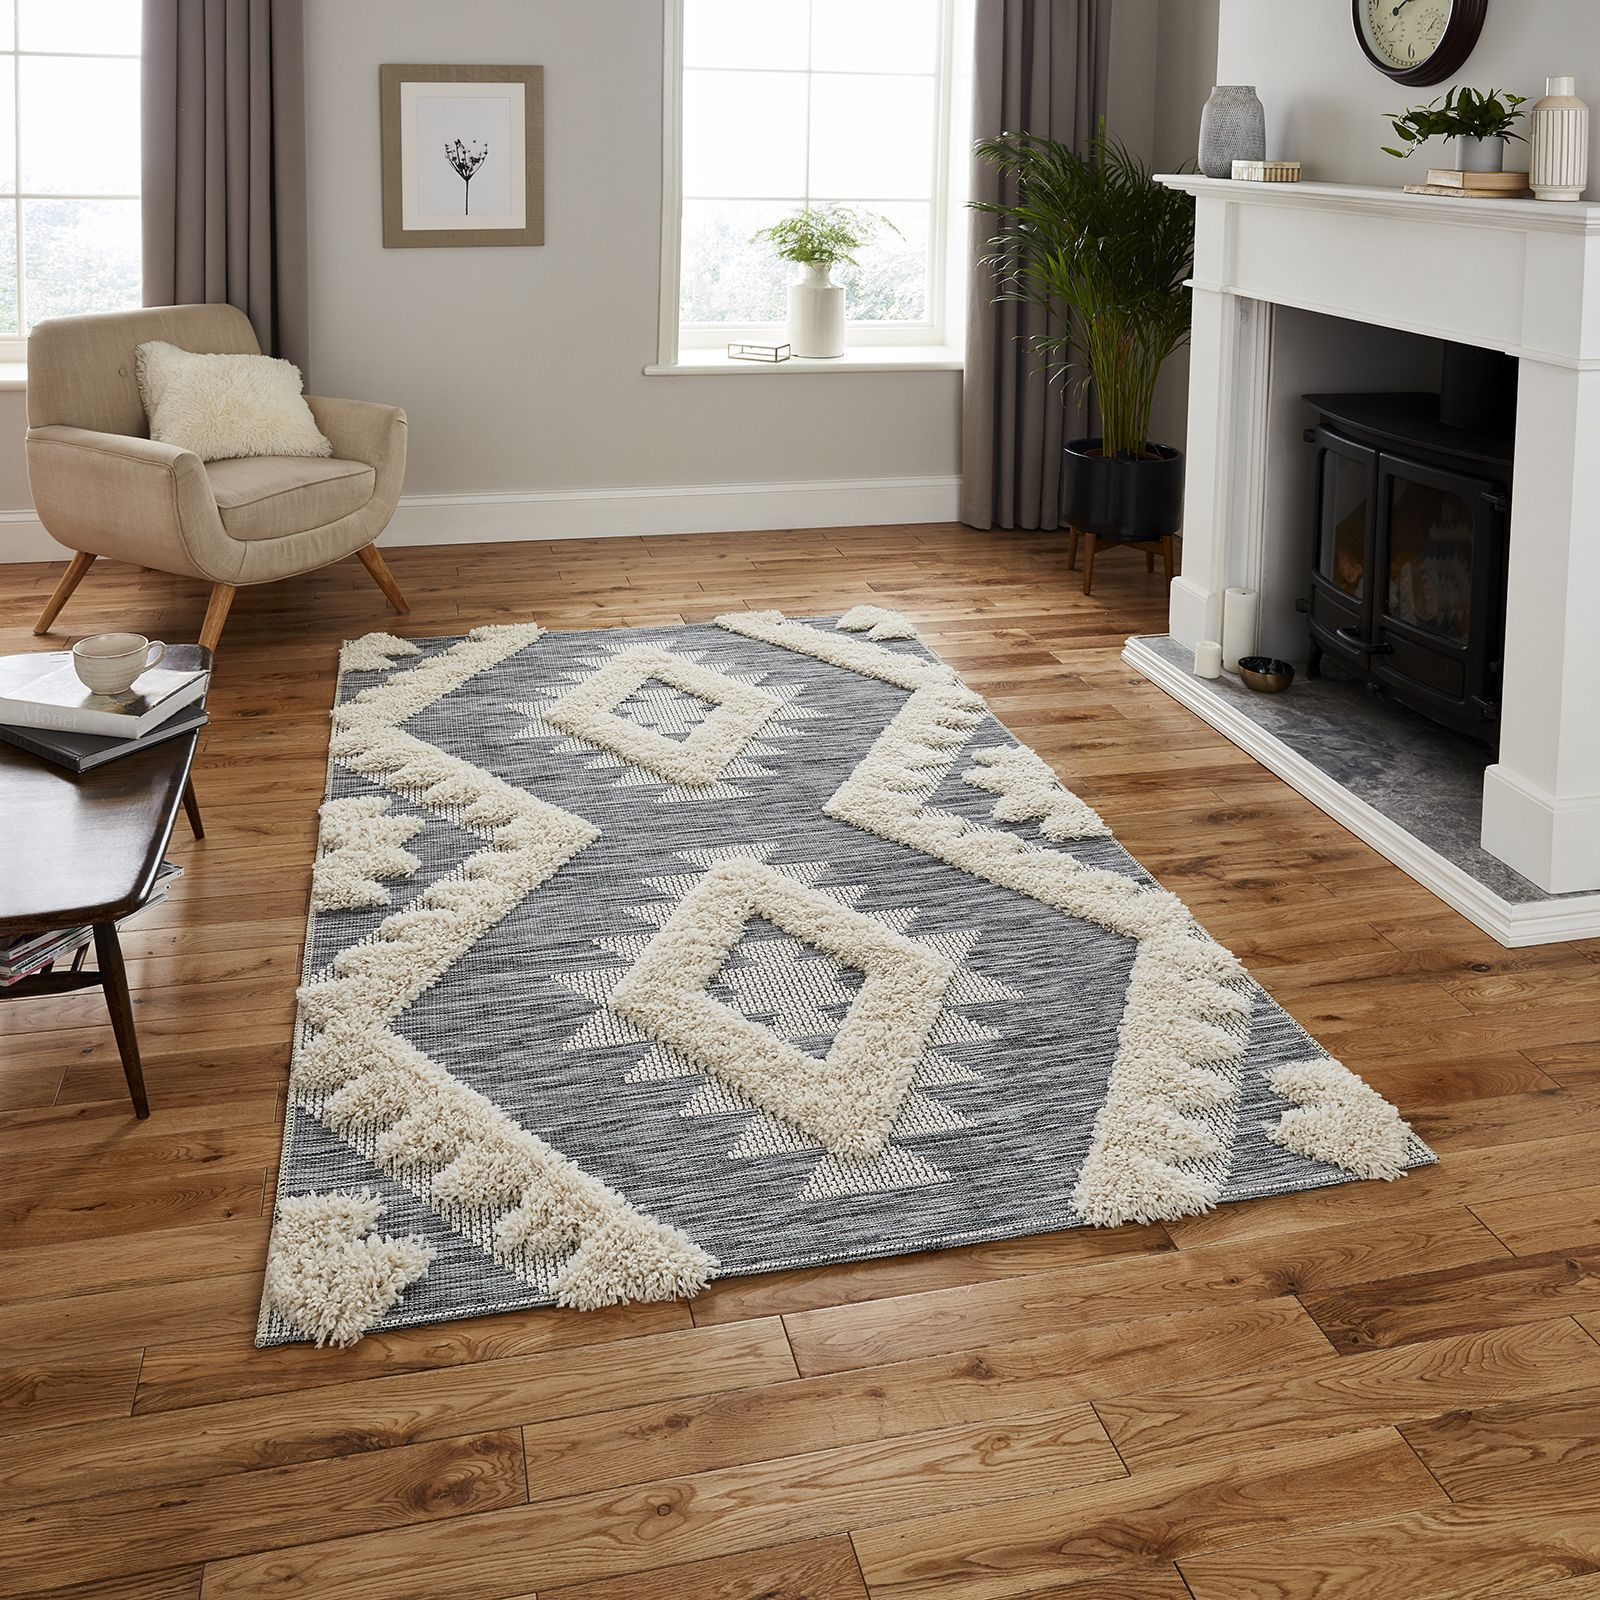 productsimg Rugs, Morning room, Contemporary rug